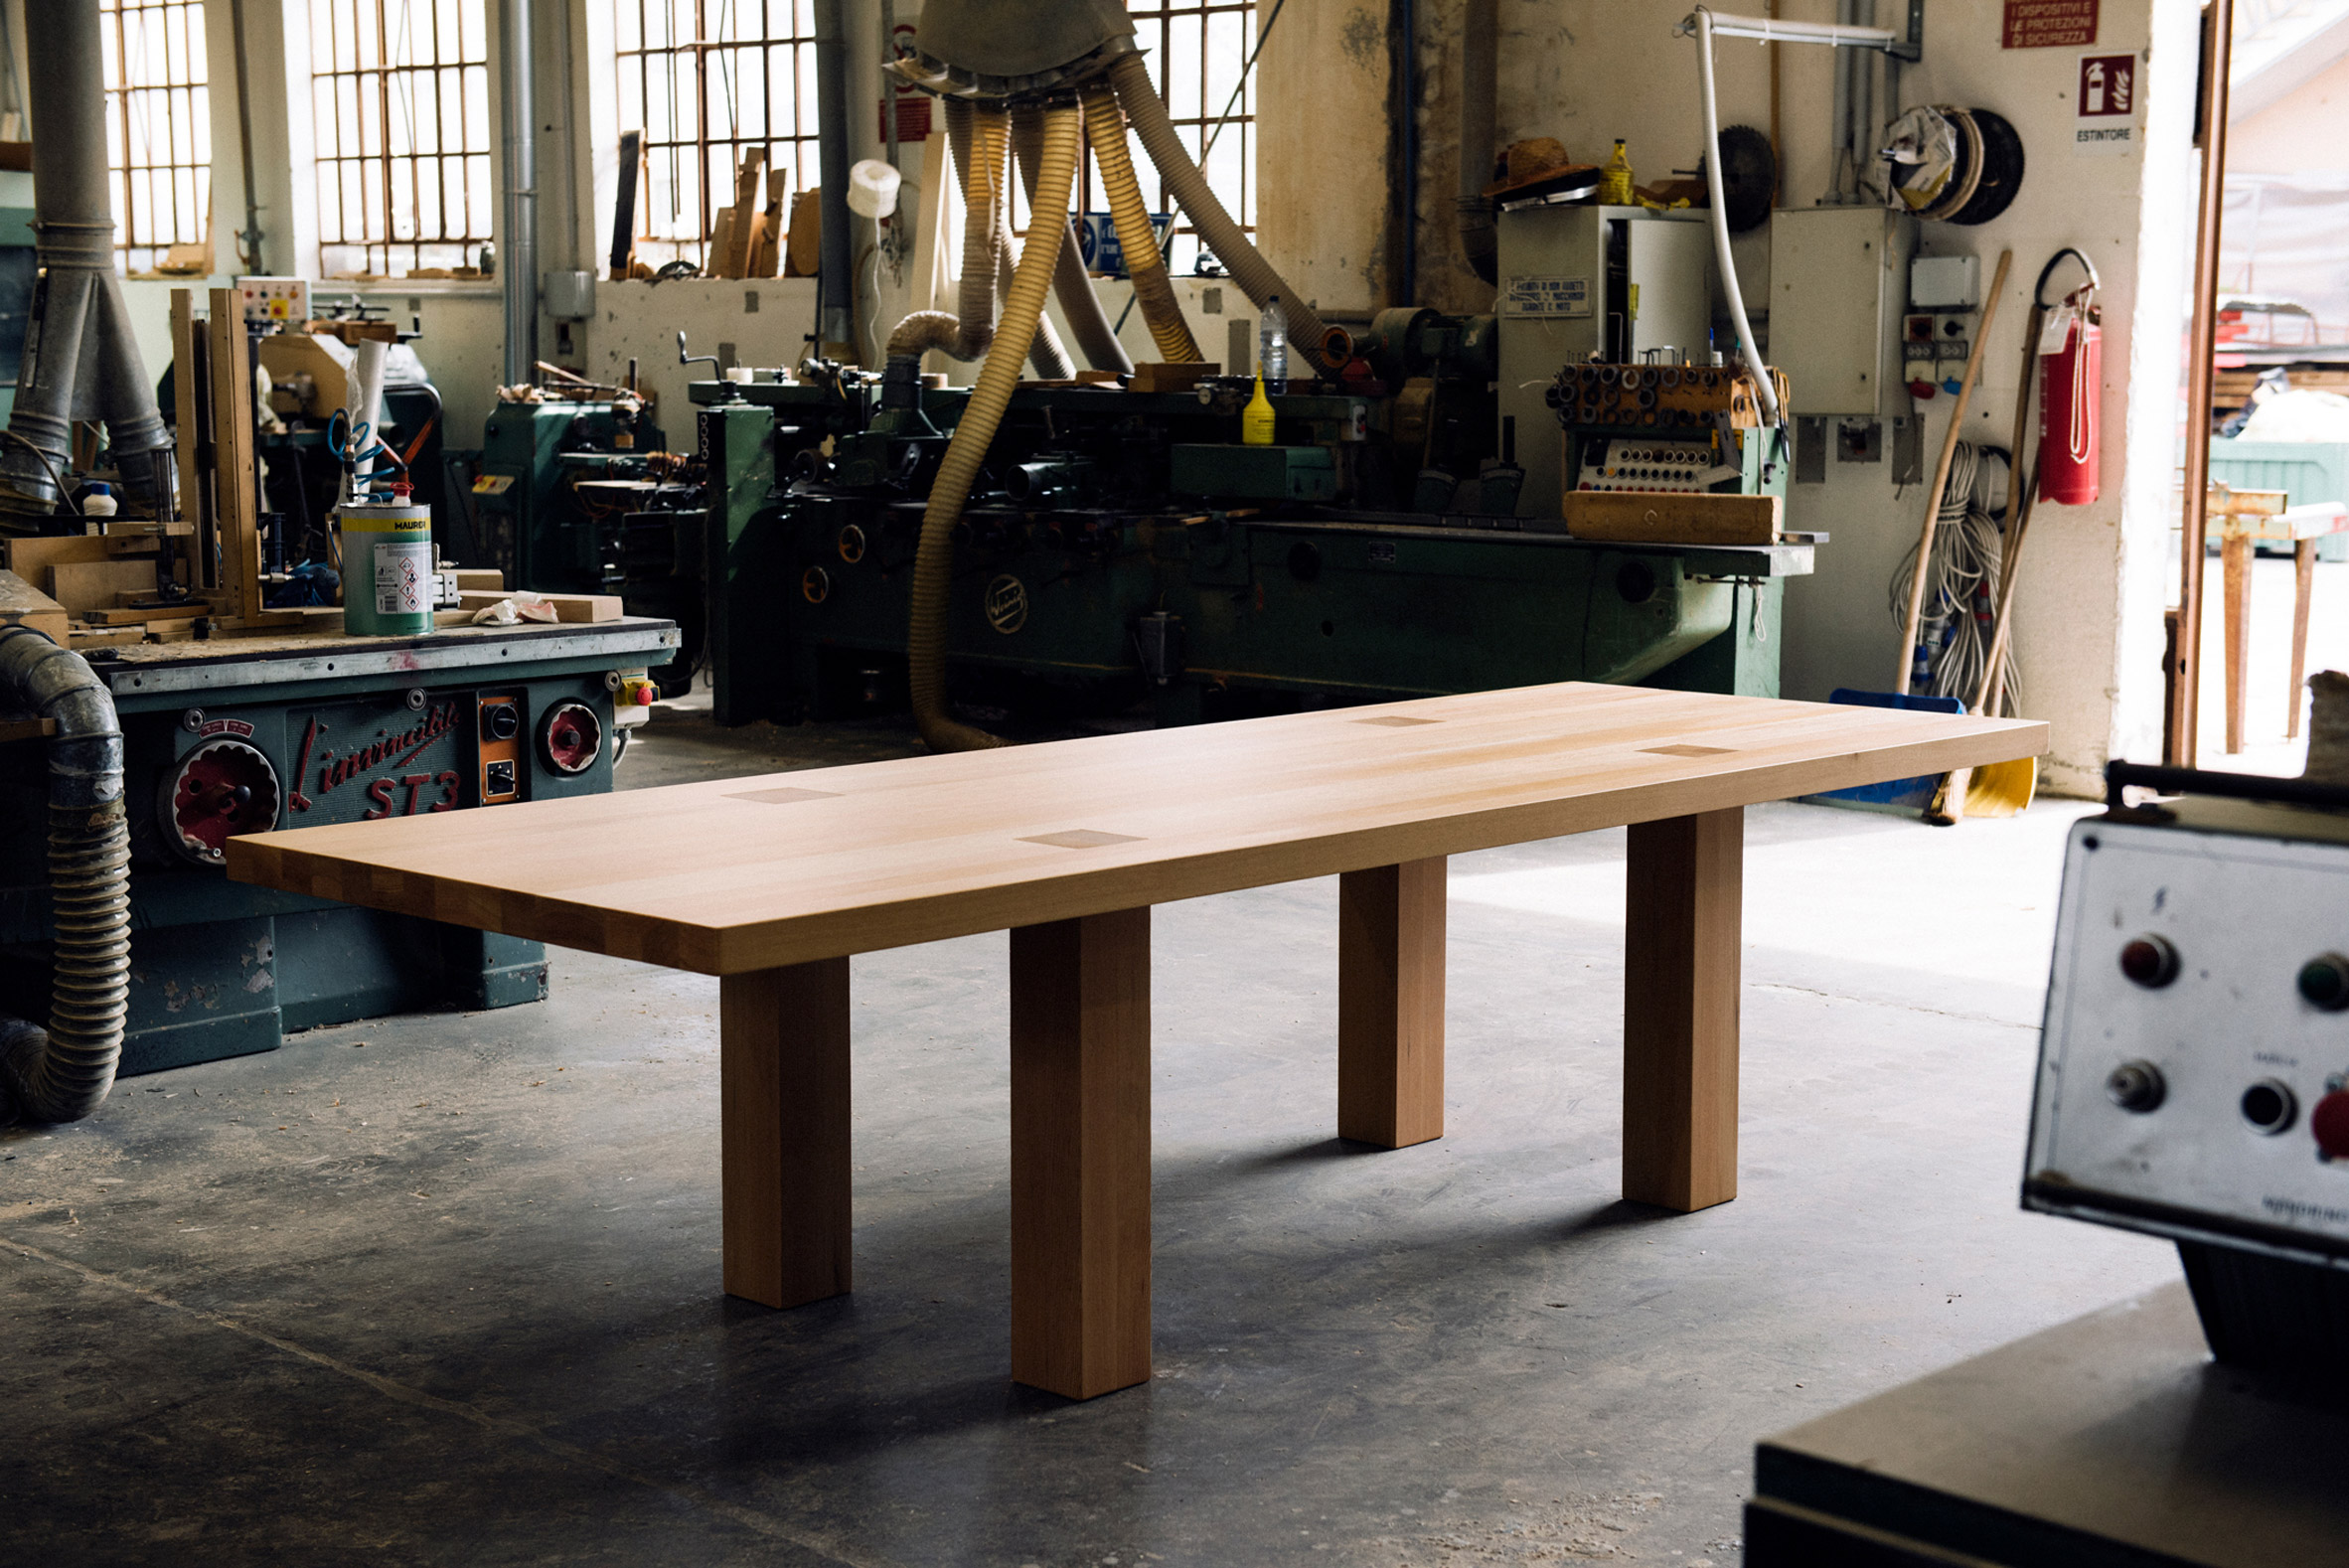 Hem shows production process behind Max Lamb's Max Table